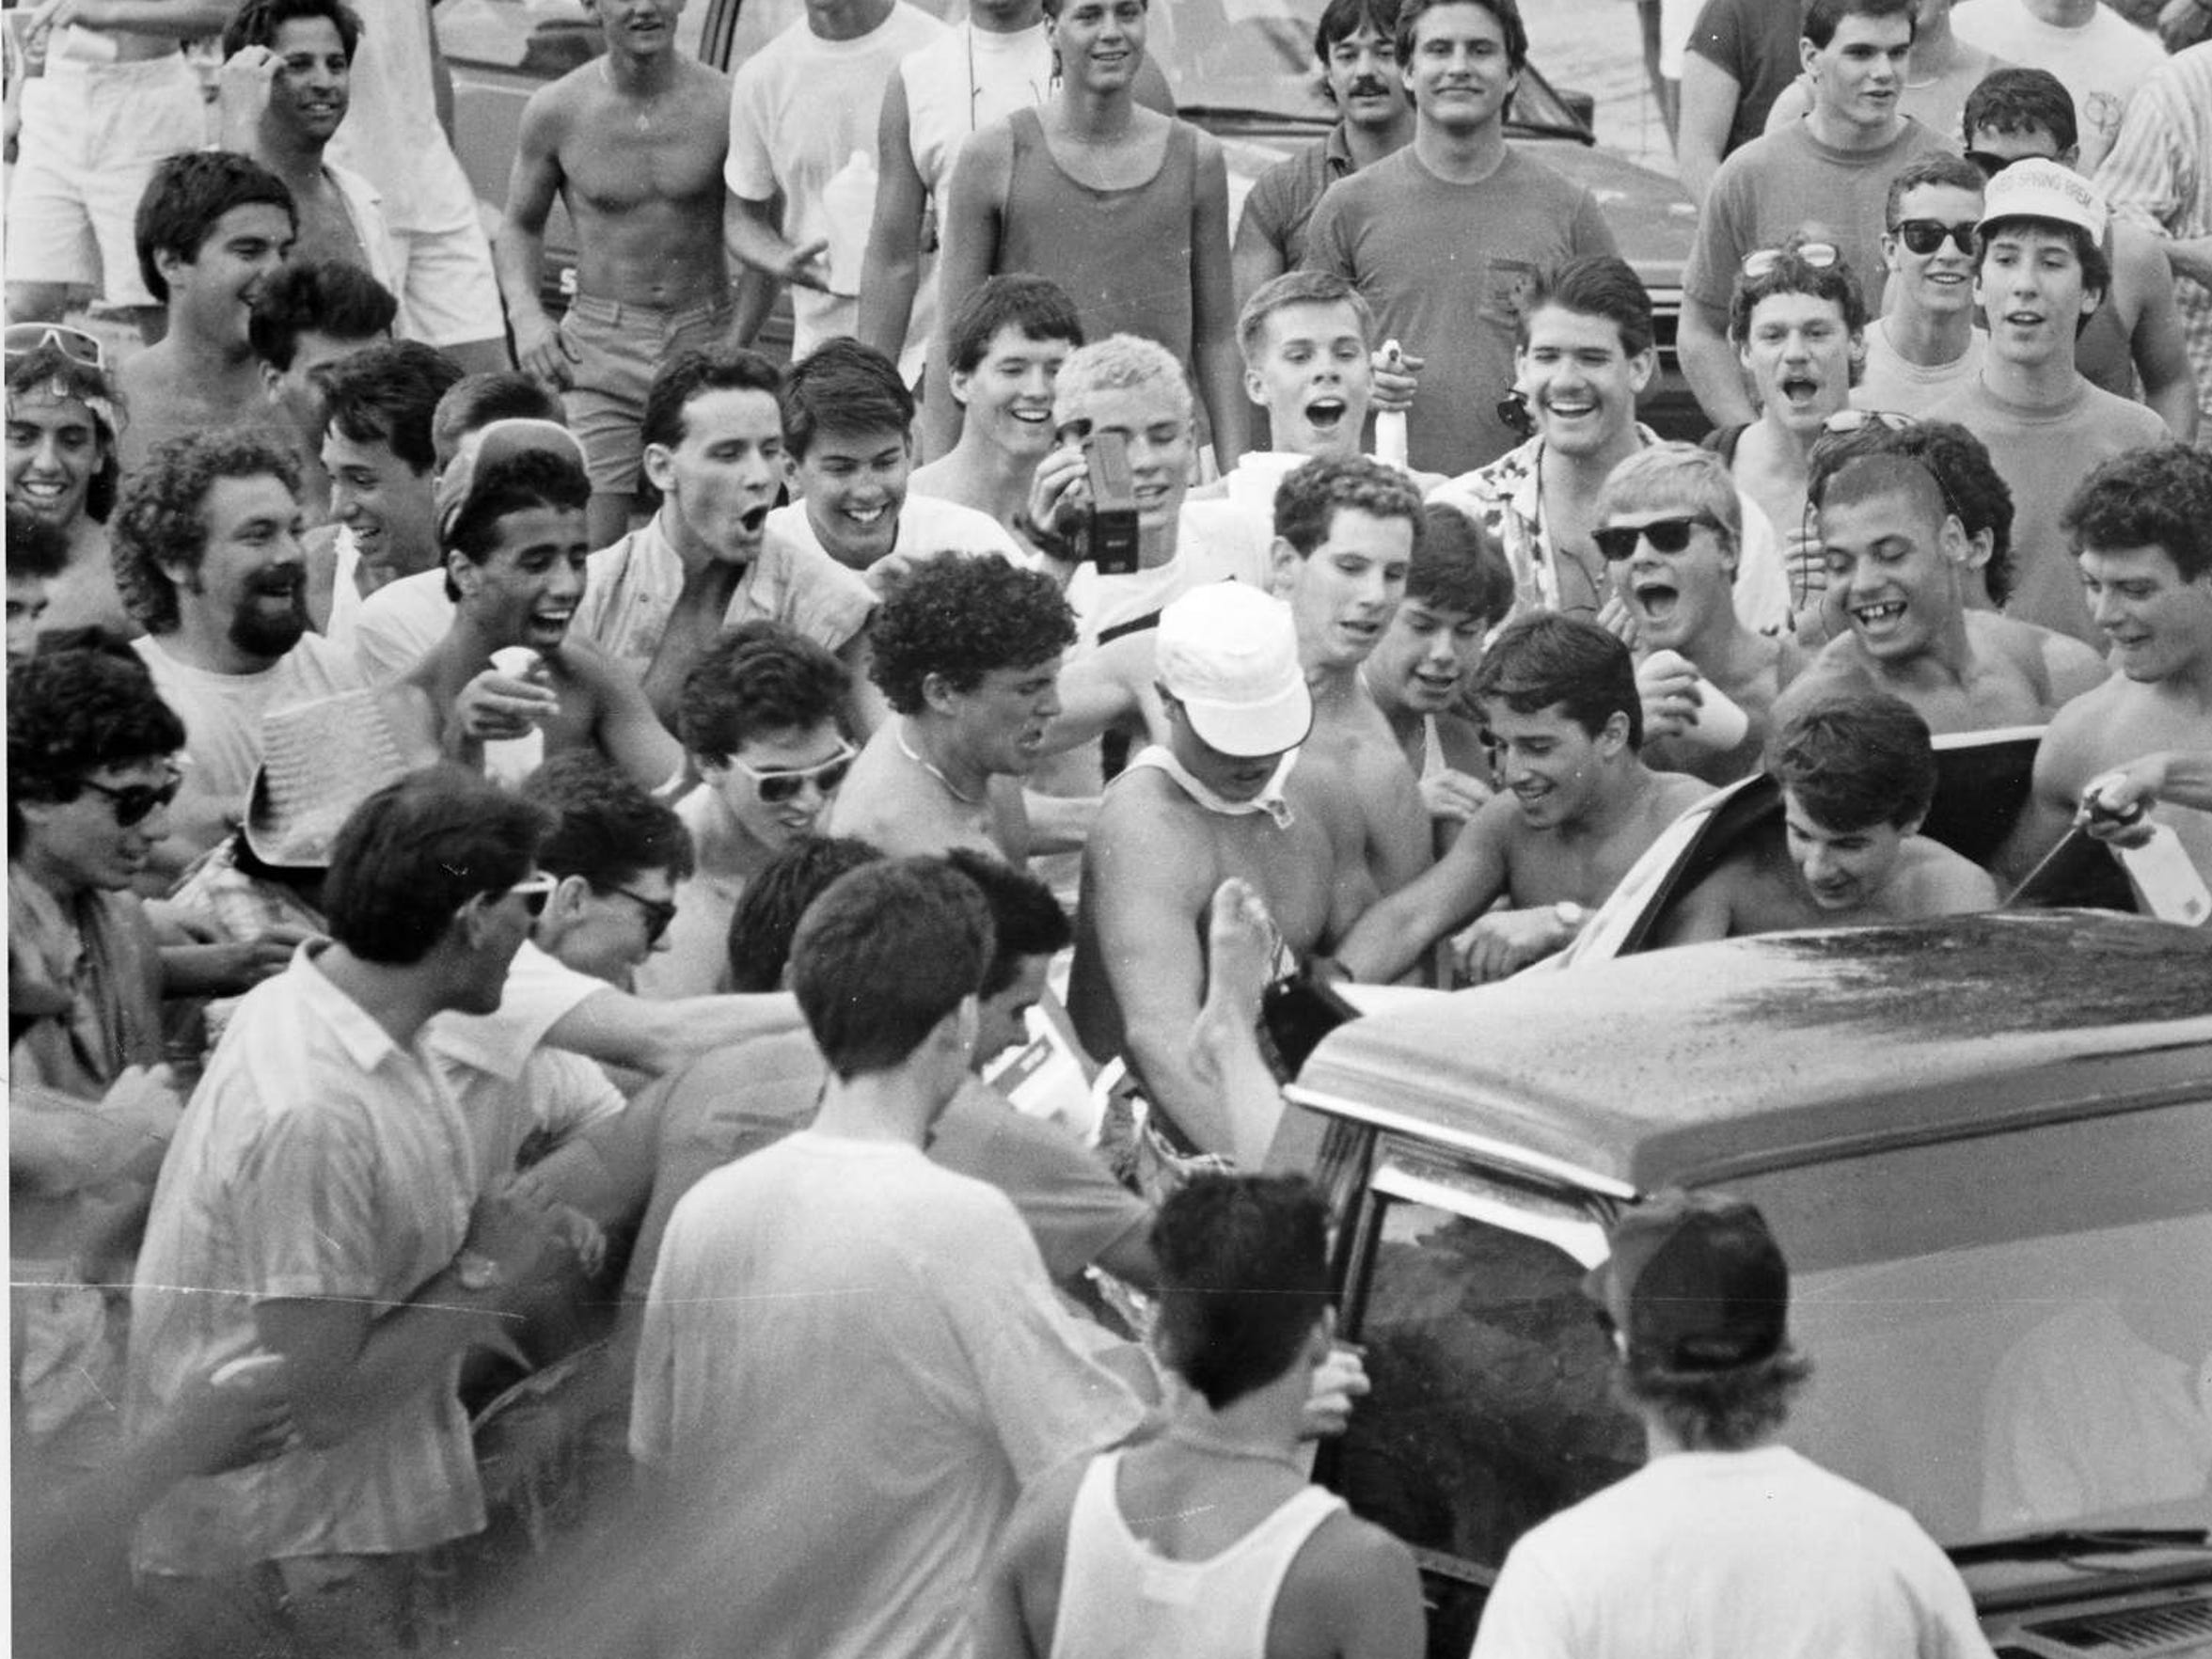 A mob of spring breakers attack a woman in the back of a pickup truck during the 1986 riot. Several women had their clothing torn off by the mob, and at least one woman reported to police she was sexually assaulted in the middle of the street.